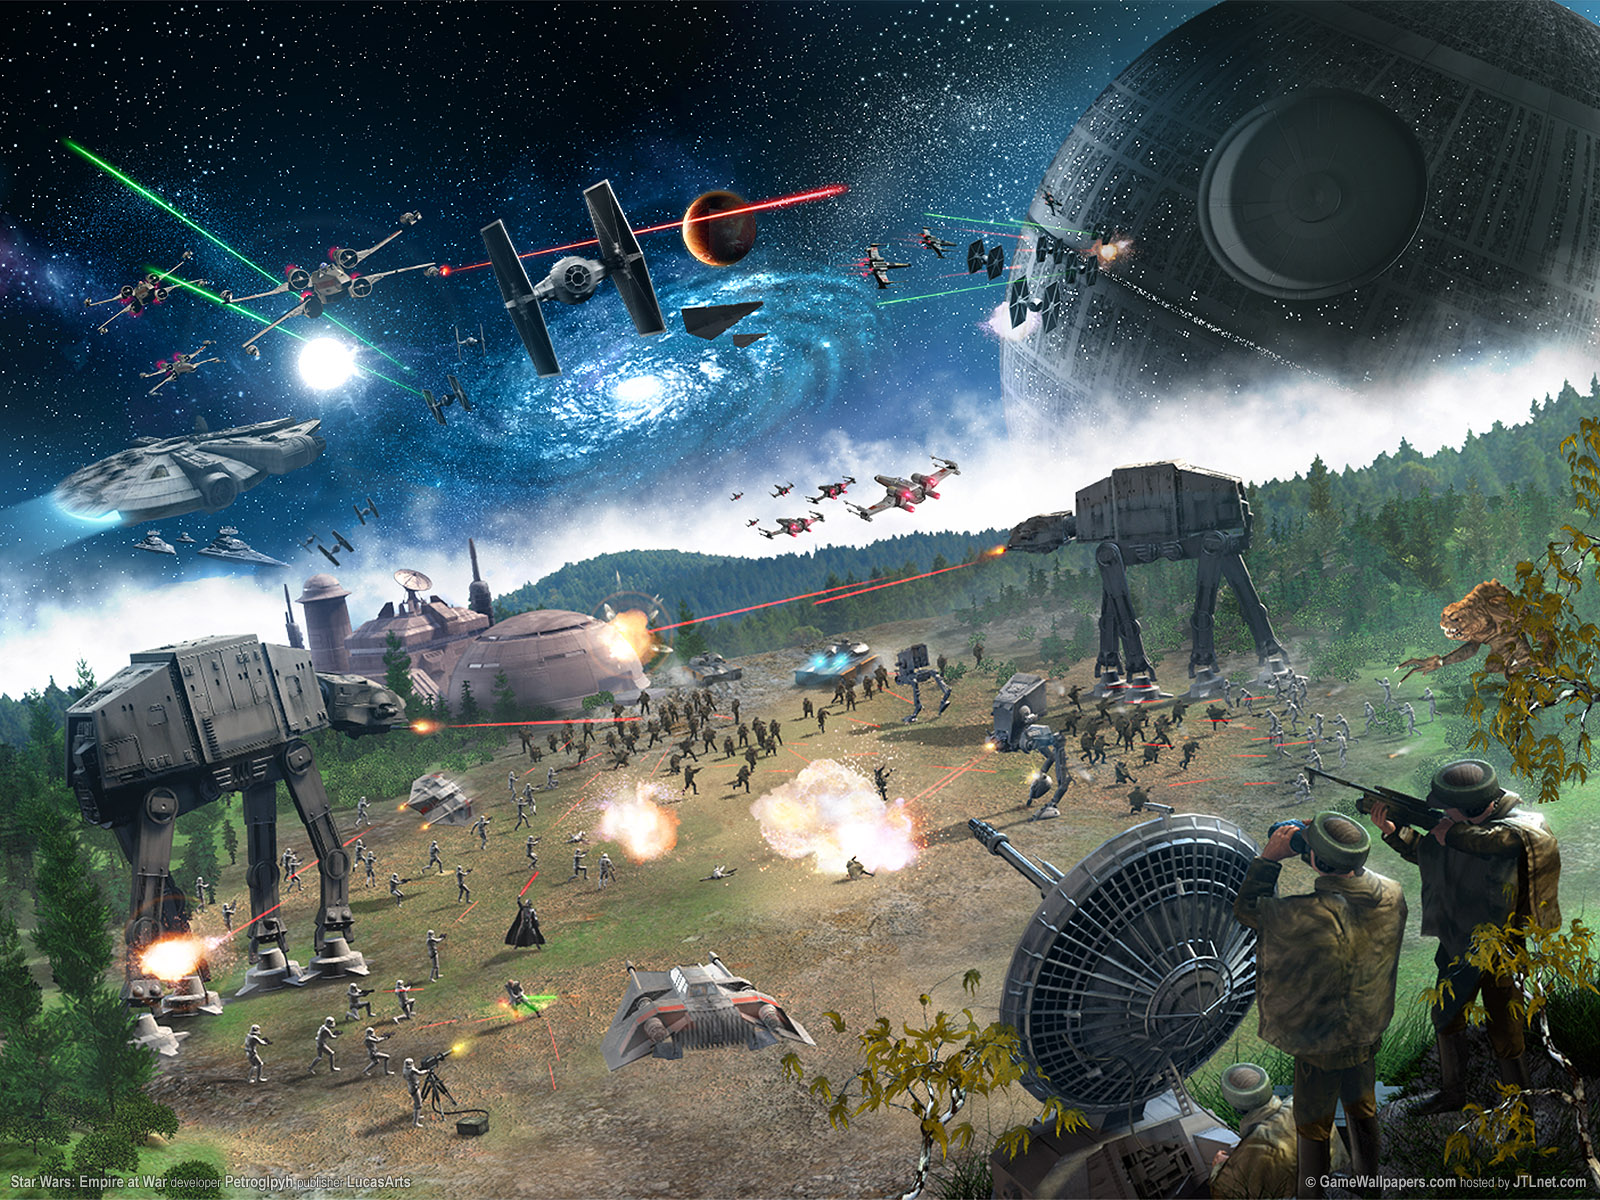 http://4.bp.blogspot.com/_hsRTPvZ34co/THLTPGg_CBI/AAAAAAAAGDI/xR-gyEXg8ck/s1600/wallpaper_star_wars_empire_at_war_04_1600.jpg